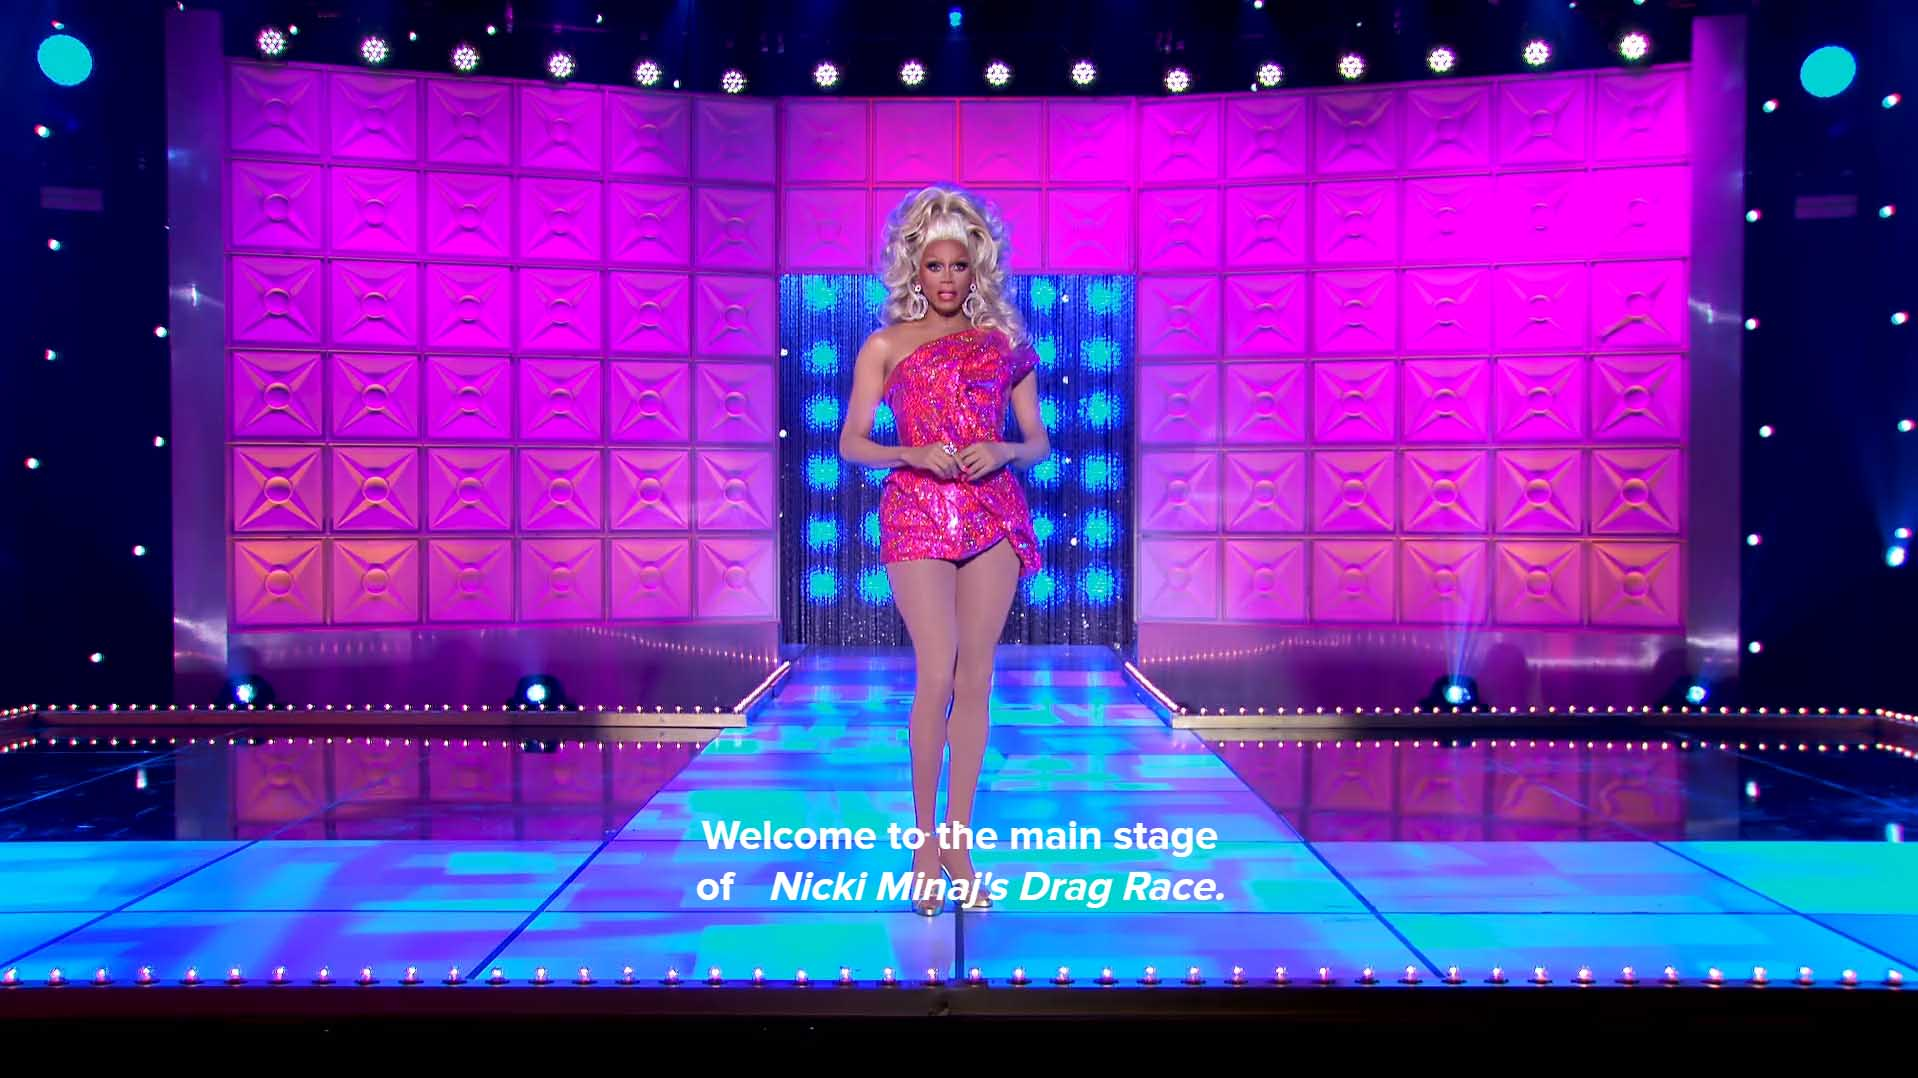 'RuPaul's Drag Race' is back for season 12. Let's read into the shadiest moments from the premiere and see how these queens make it work.